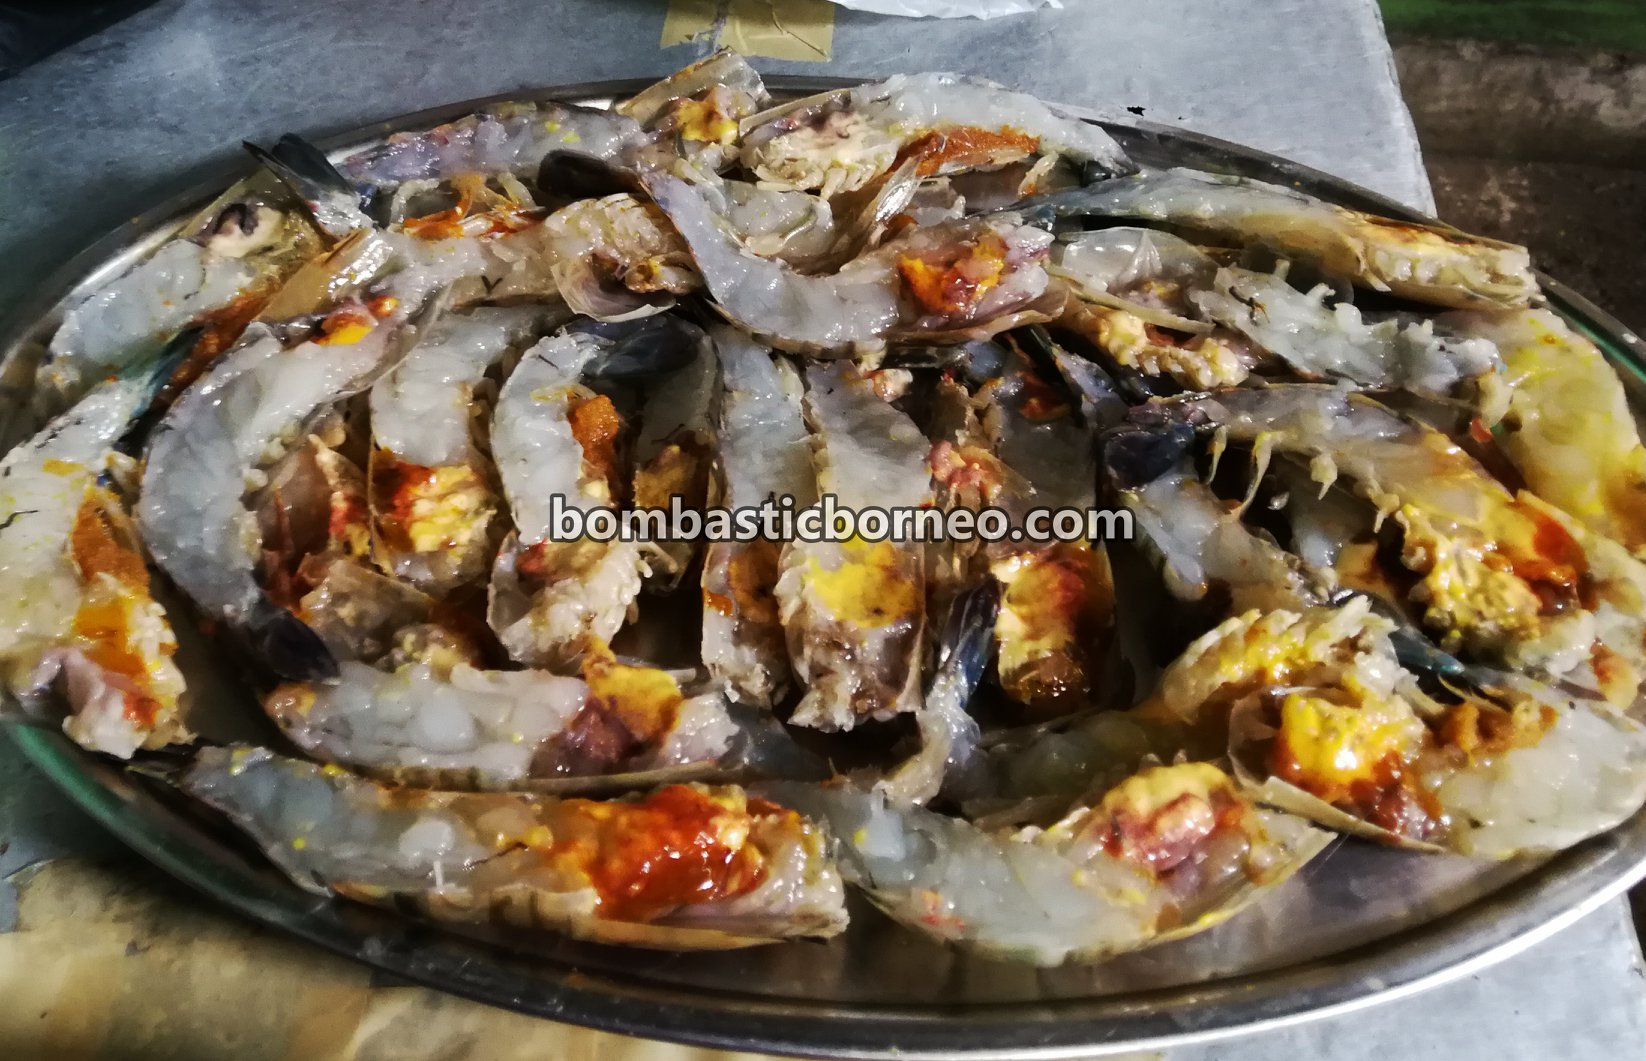 Udang galah, Big Head Prawn, freshwater prawn, destination, Jit Hin, Kampung Tebakang, Serian, Malaysia, Borneo, Tourism, tourist attraction, travel guide, 穿越砂拉越西连, 益兴招牌菜, 蓝脚大头虾美食